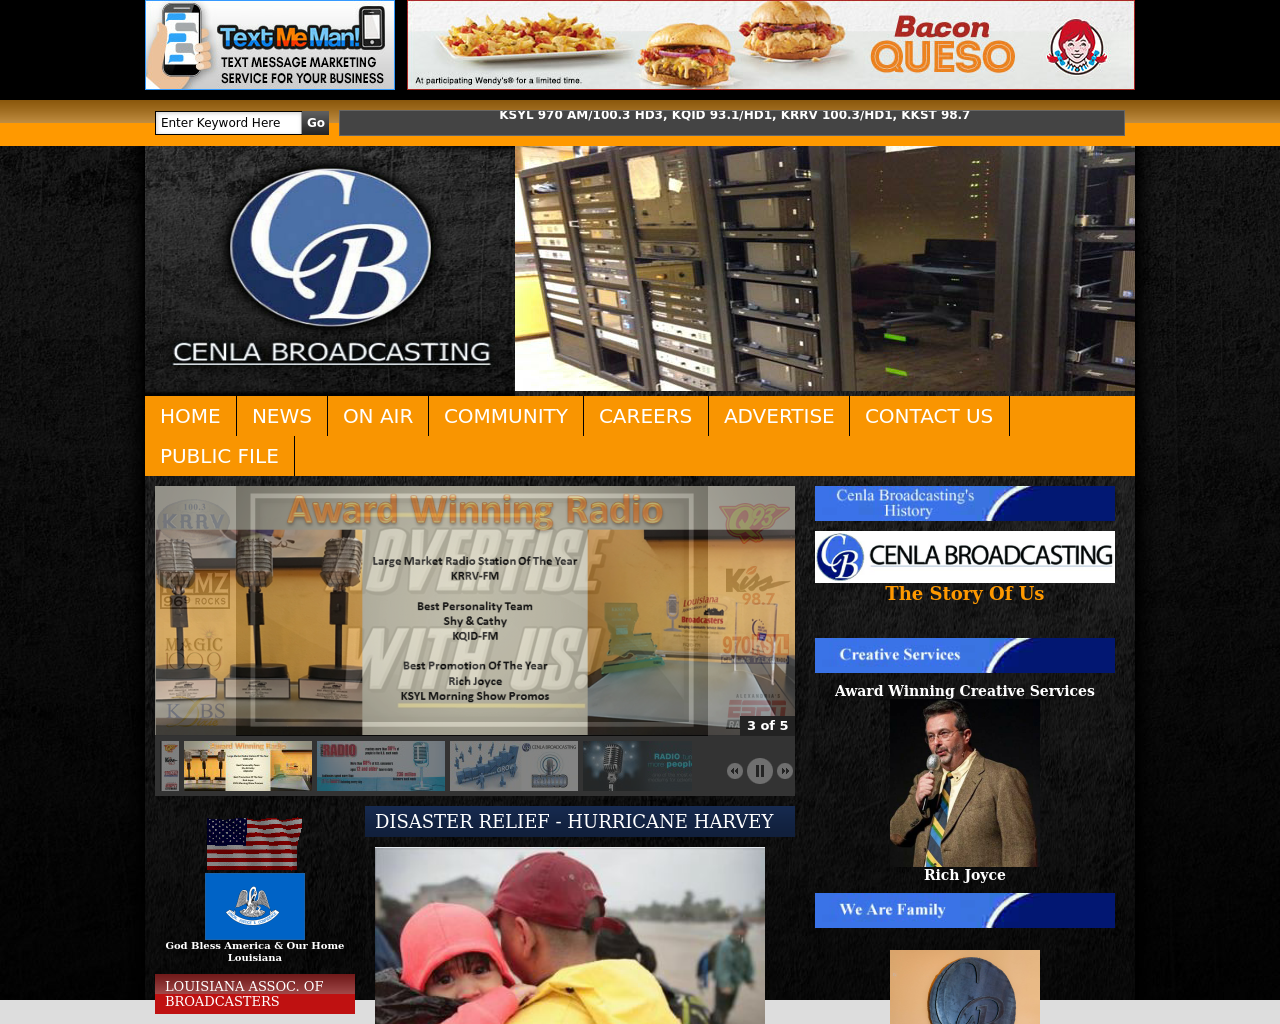 Cenla-Broadcasting-Advertising-Reviews-Pricing